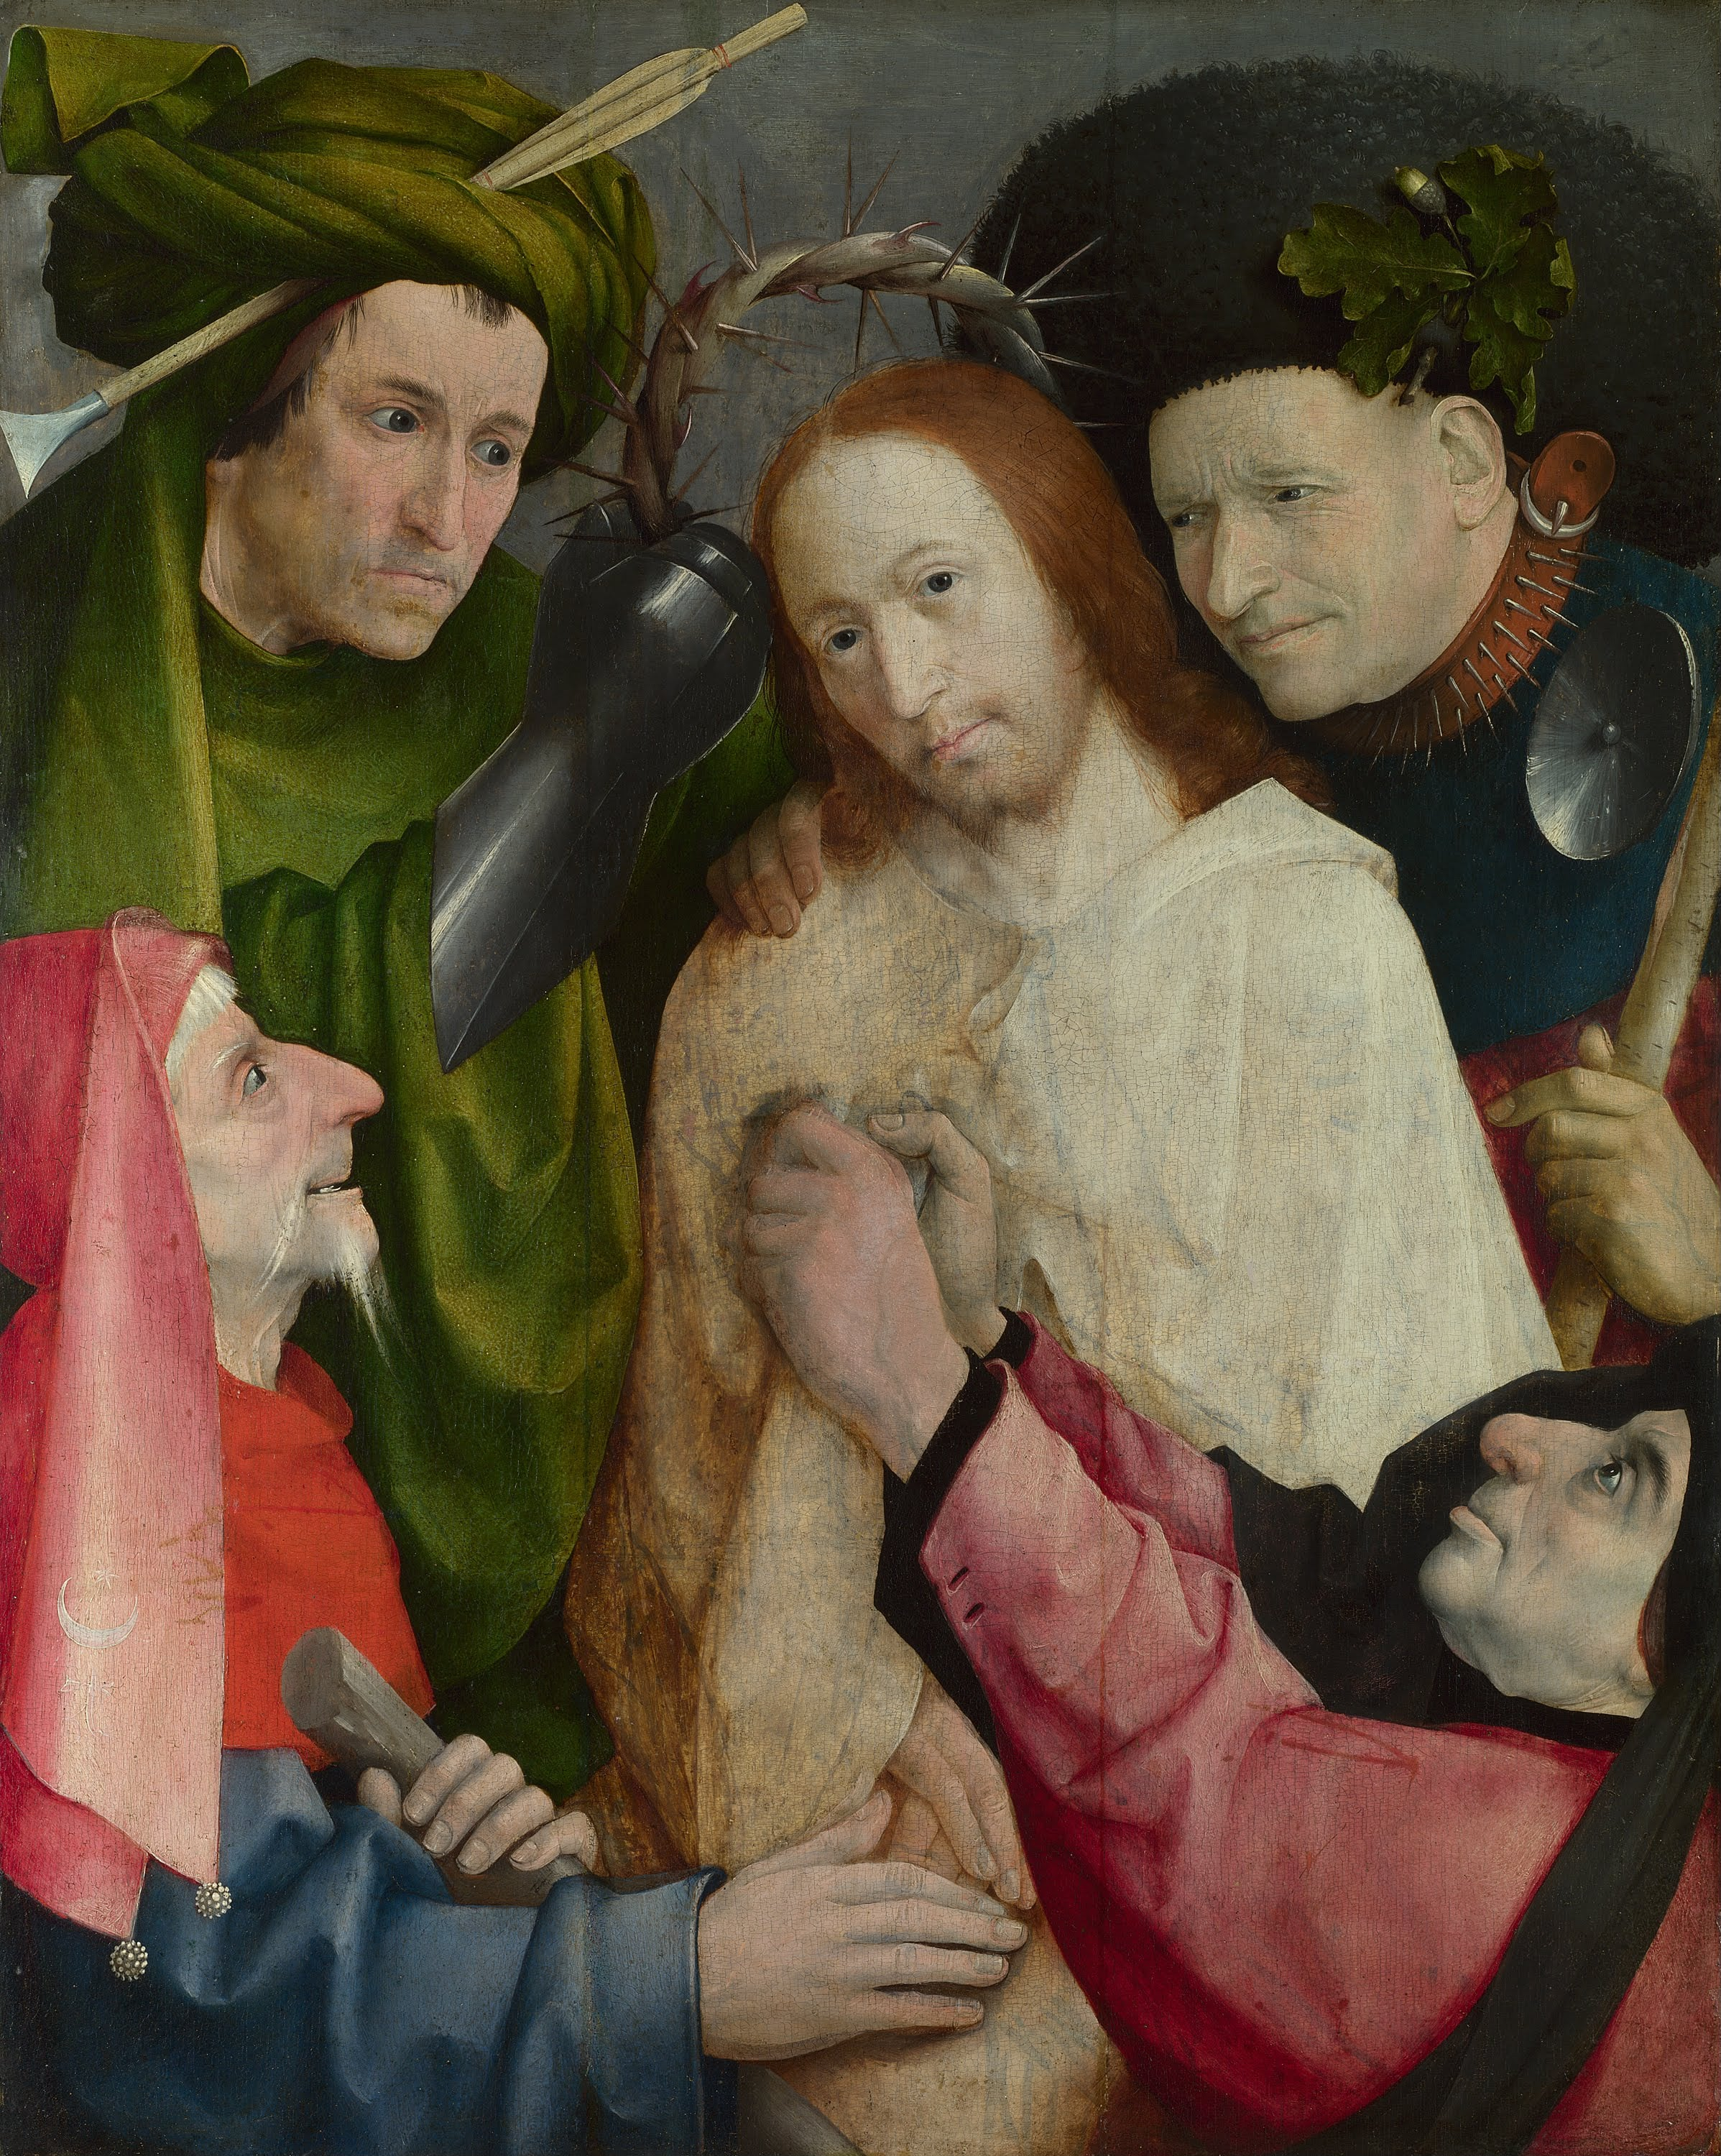 4. Hieronymus Bosch, Christ Mocked (The Crowning with Thorns), about 1490–1500 - National Gallery, London